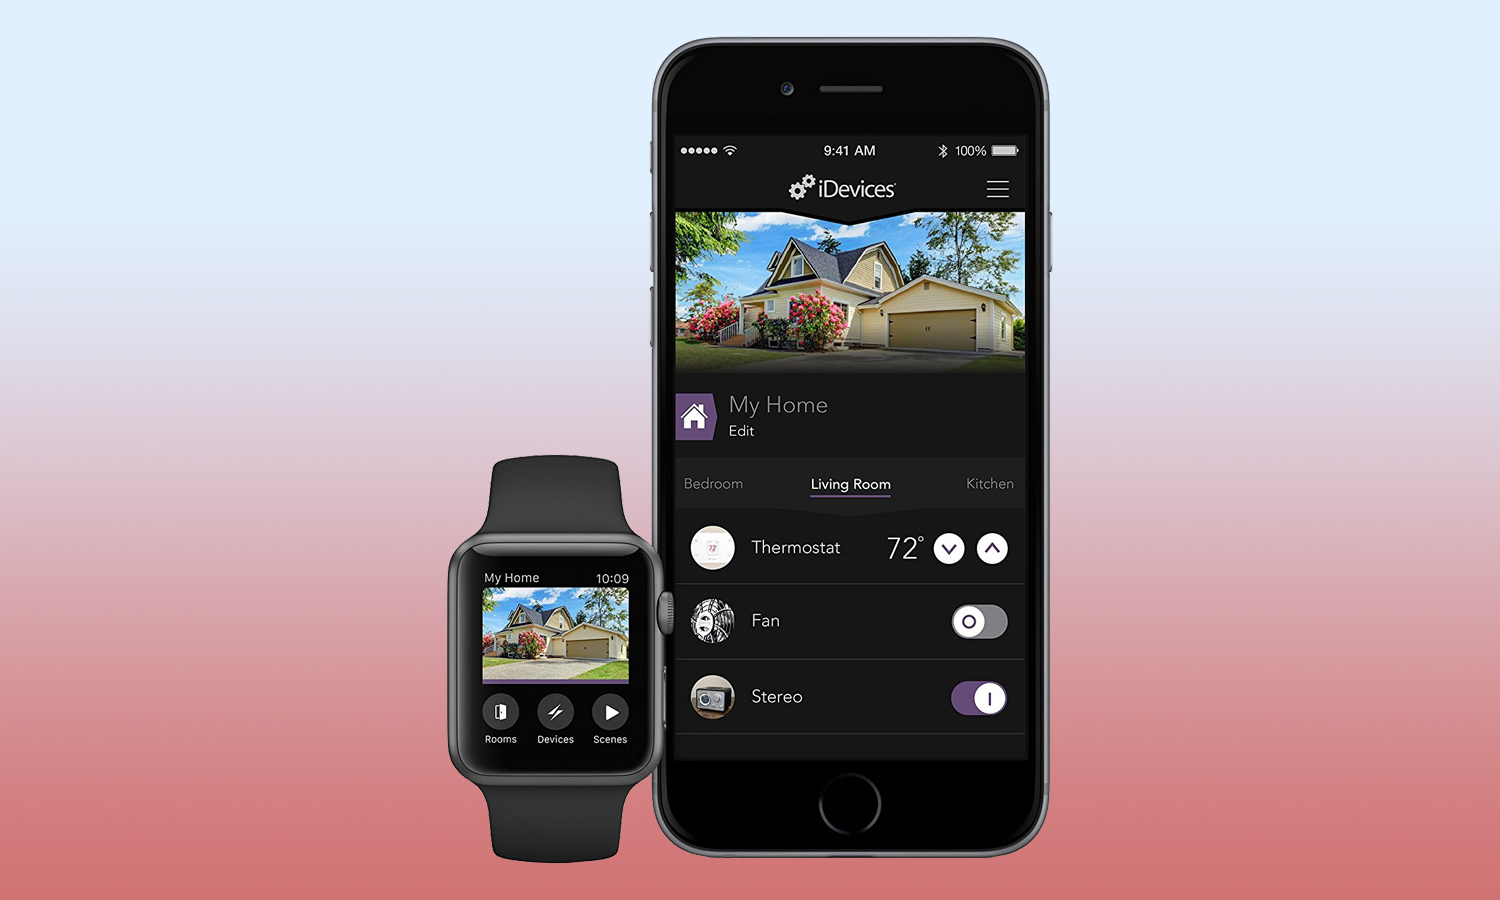 The Best Apple Homekit Products 2019 | Tom's Guide